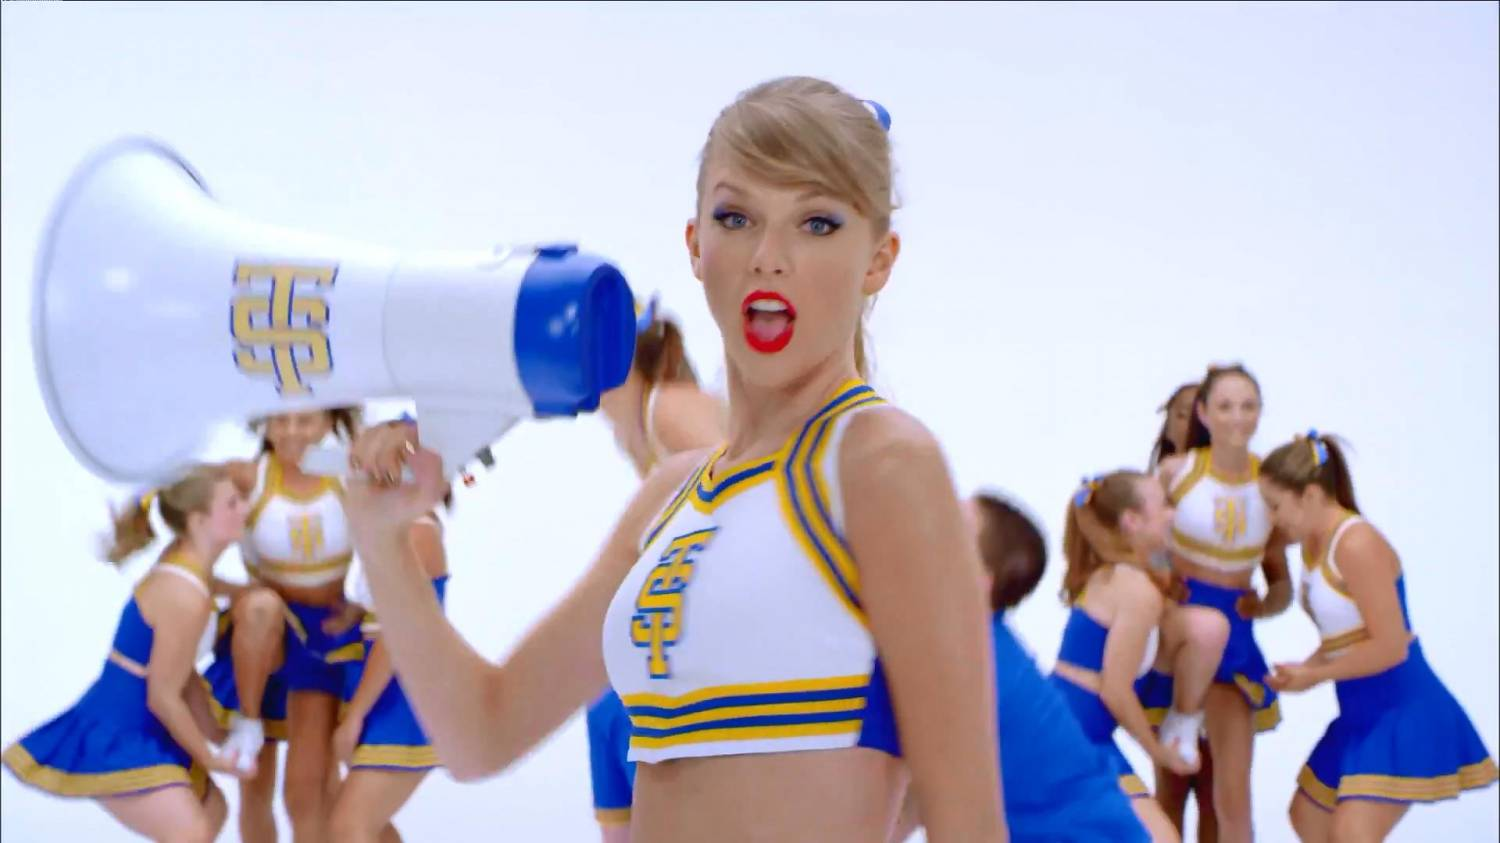 Taylor Swift - Shake It Off (2014) HD 1080p